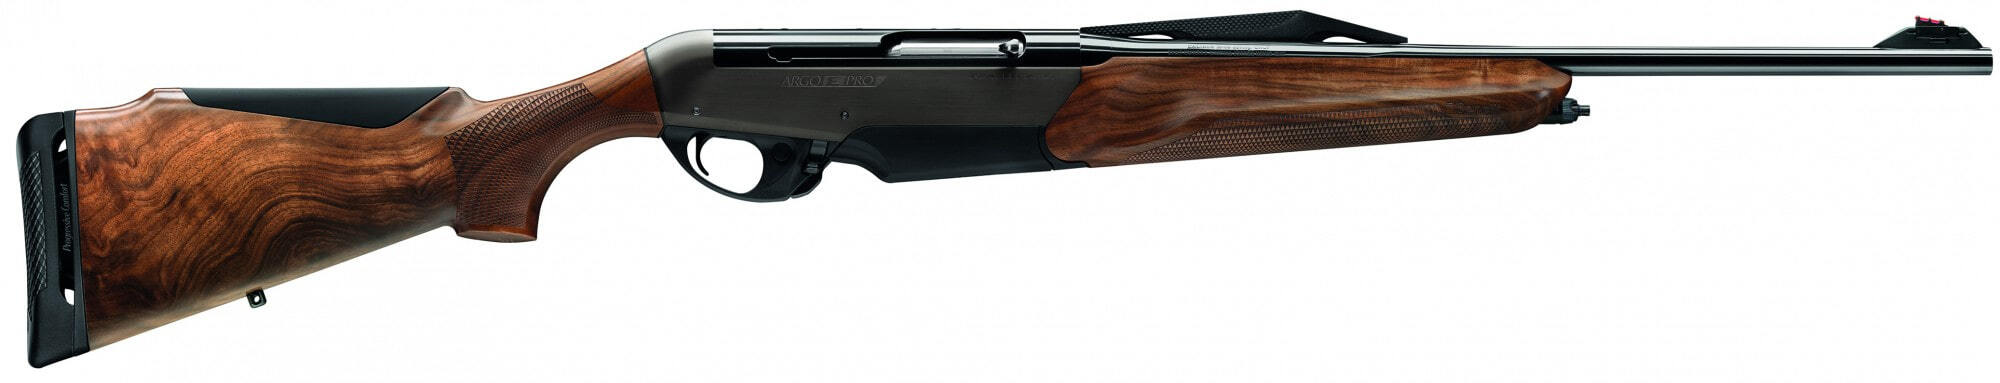 BE109-02 Carabine de battue semi-auto Benelli Argo Pro - BE109